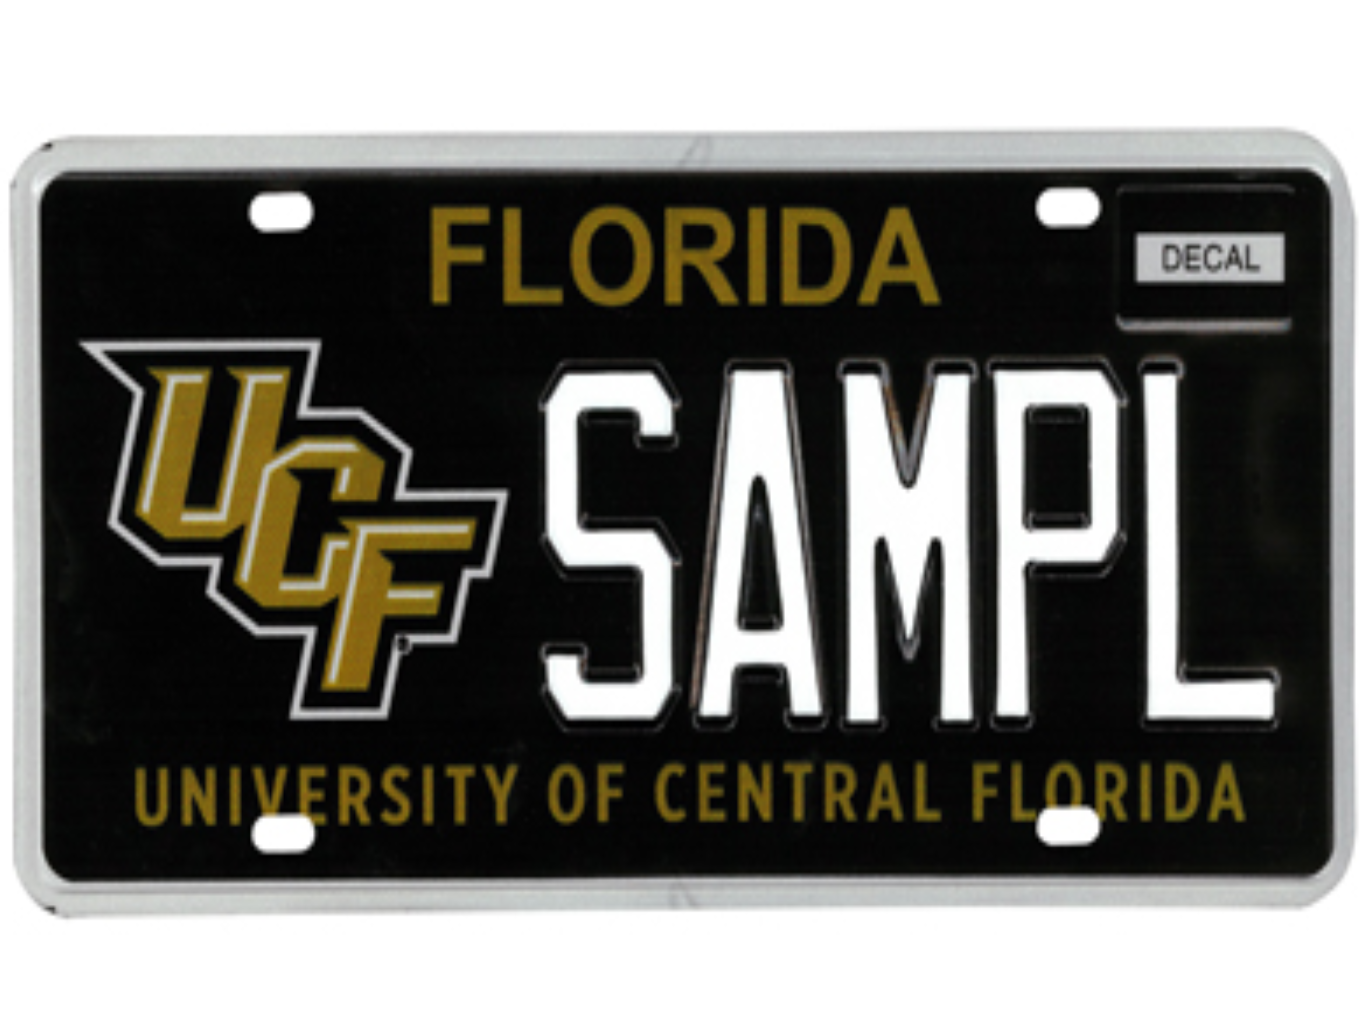 The University of Central Florida license plate.